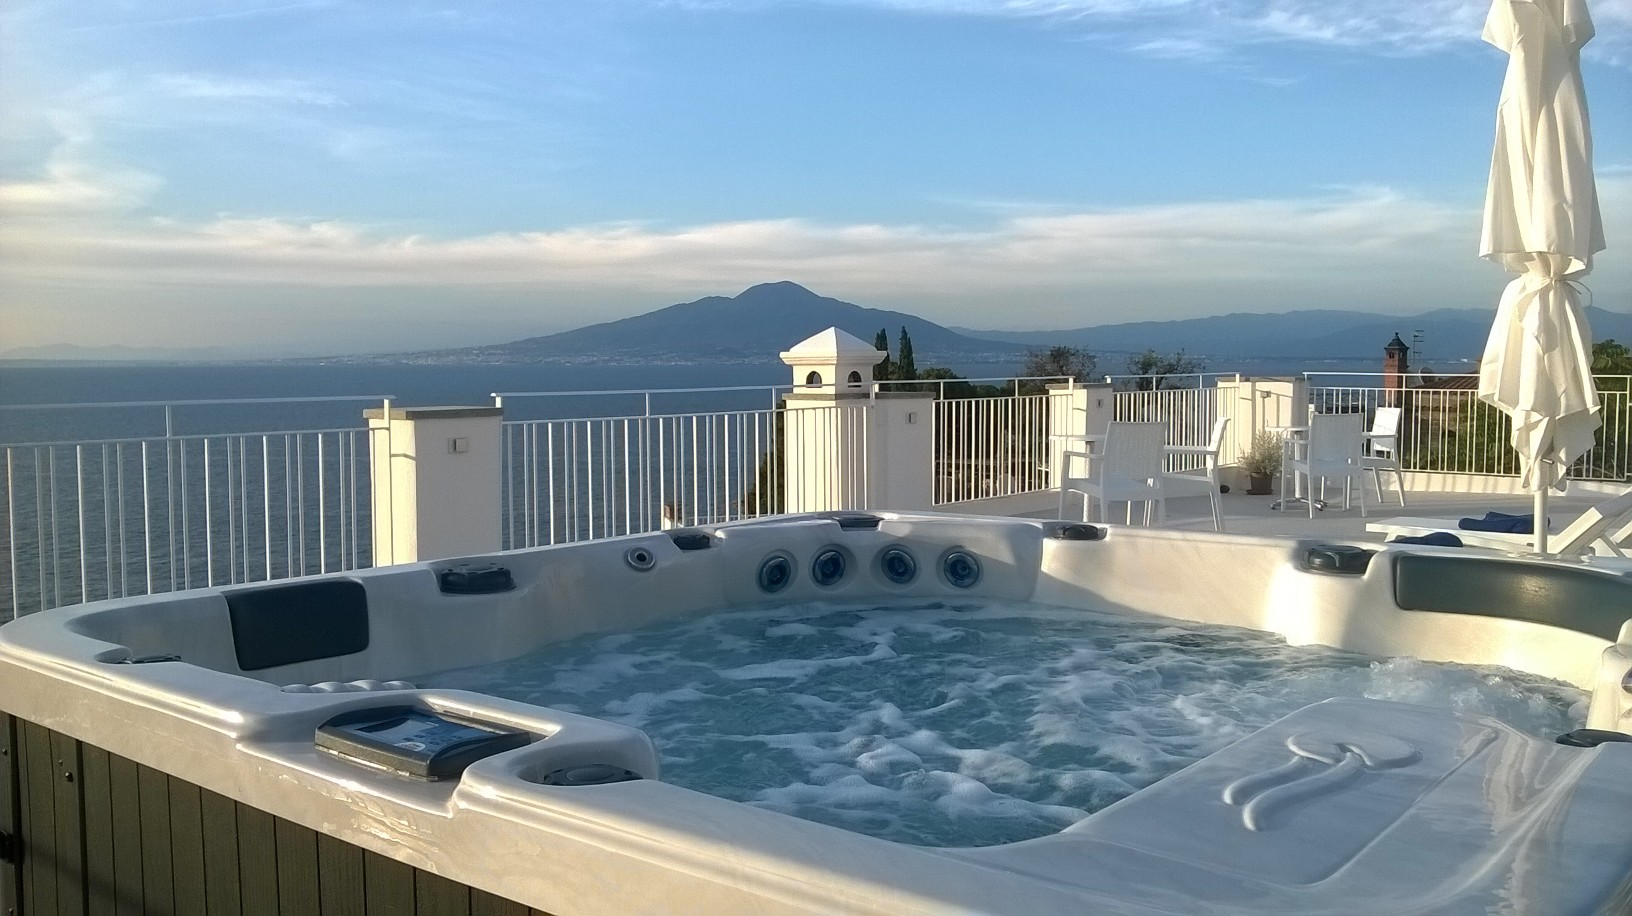 Panoramic boutique hotel sorrento boutique hotel helios for Best names for boutique hotels